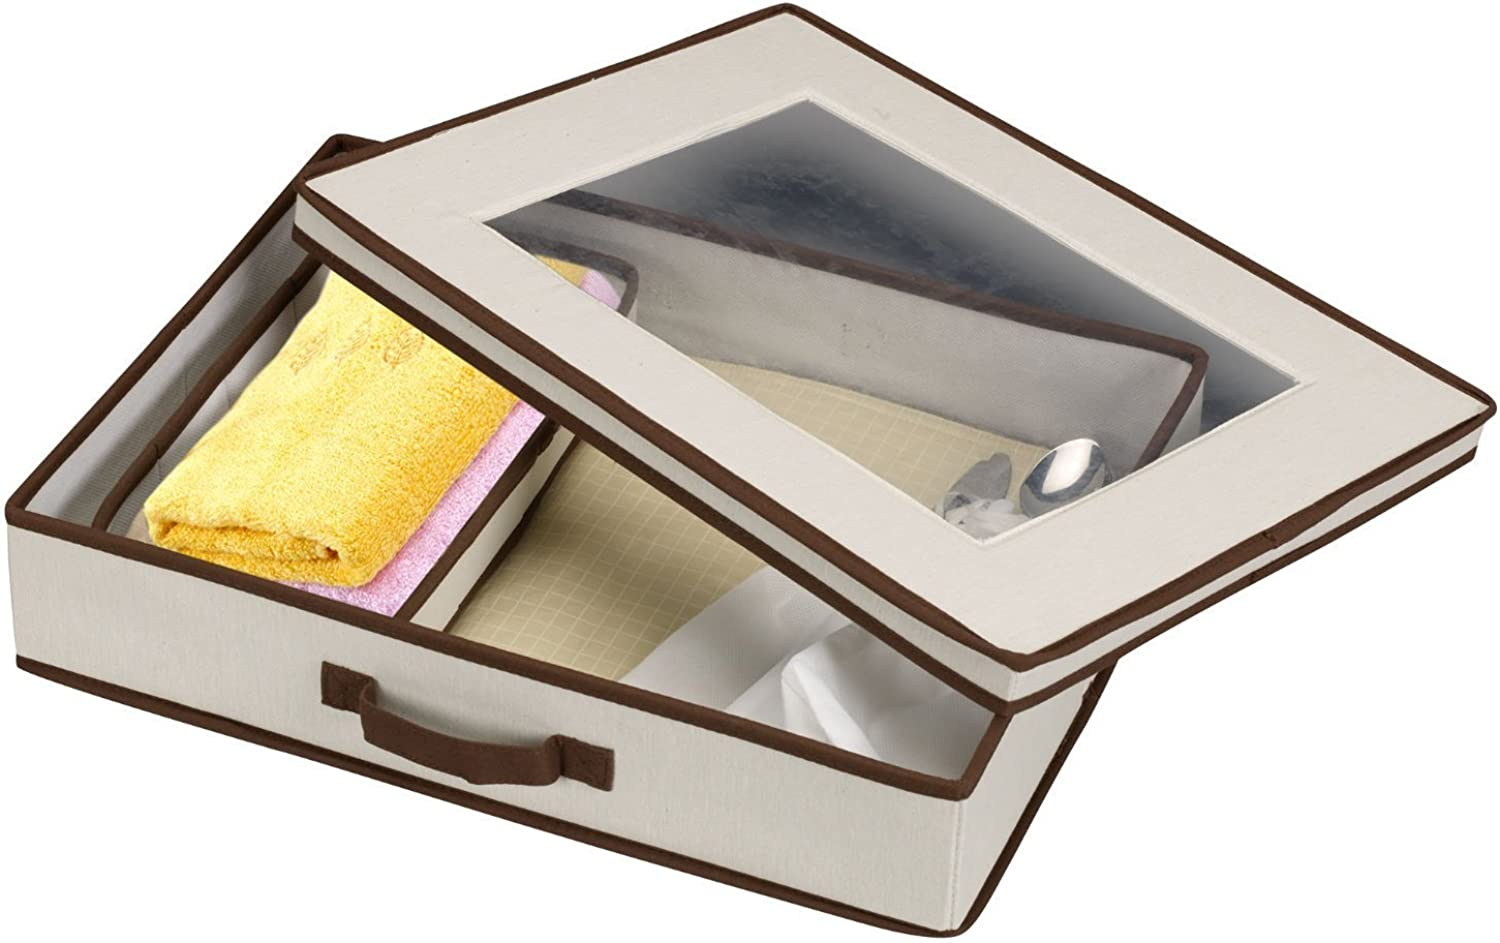 Villacera AX-AY-ABHI-94020 83-DT5774 Storage Chest for Tabletop Linens, Napkin Rings and Flatware